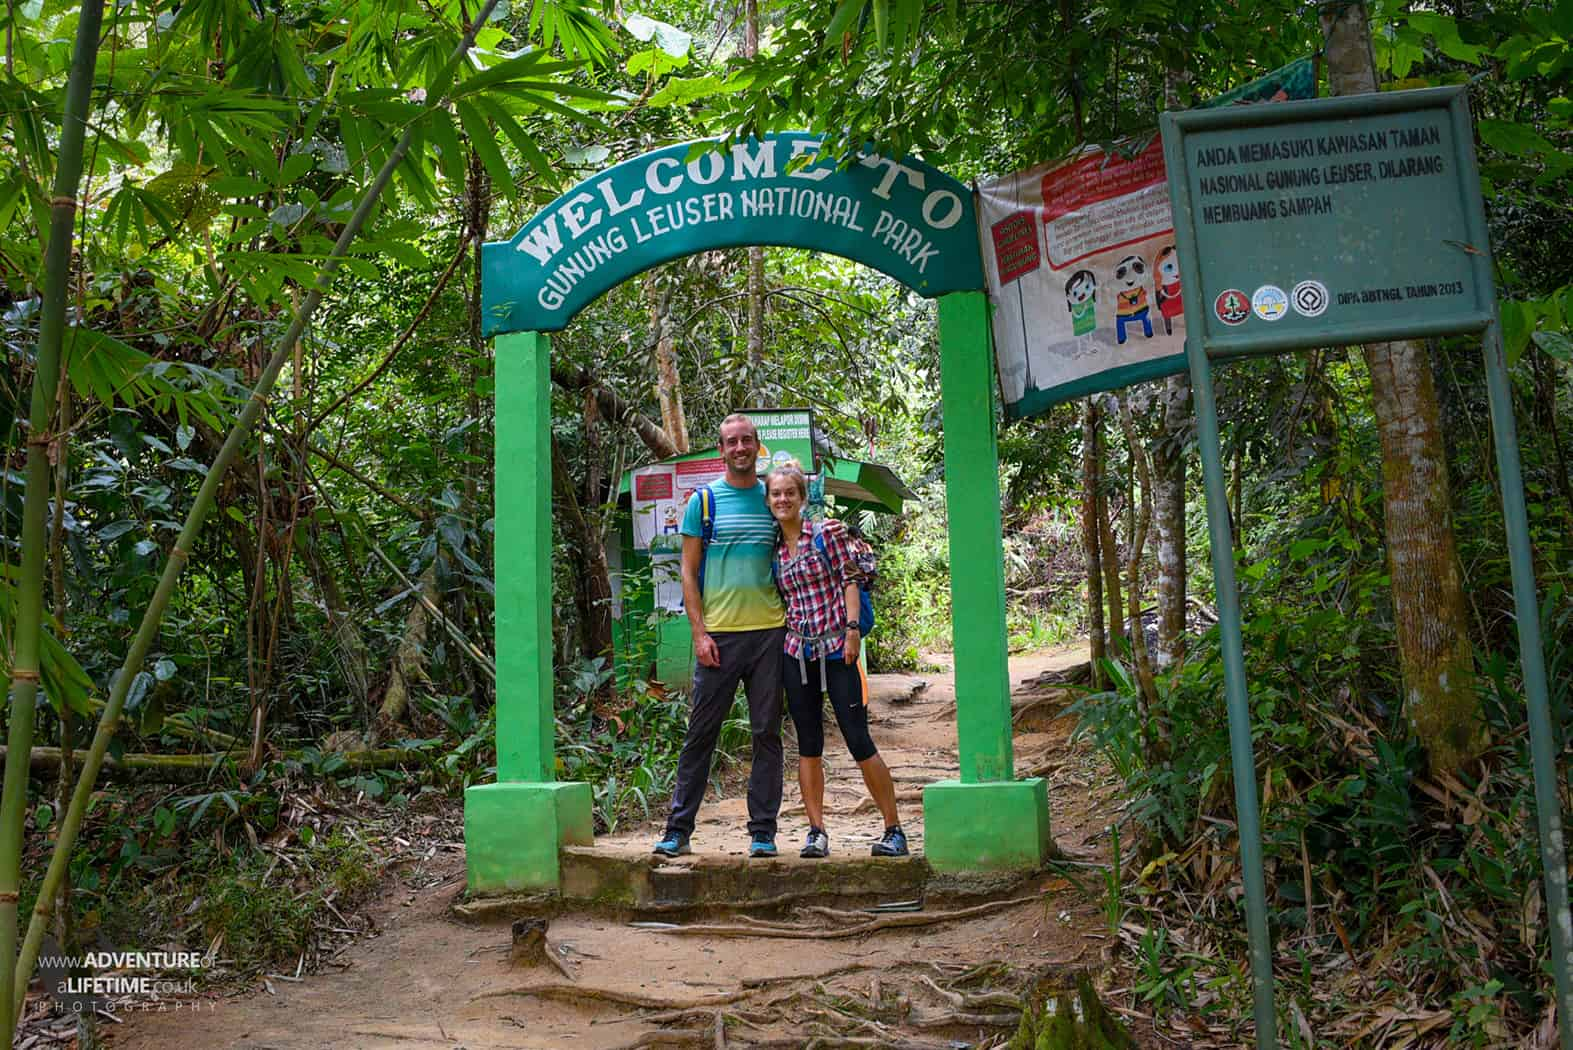 Entrance to Gunung Leuser National Park